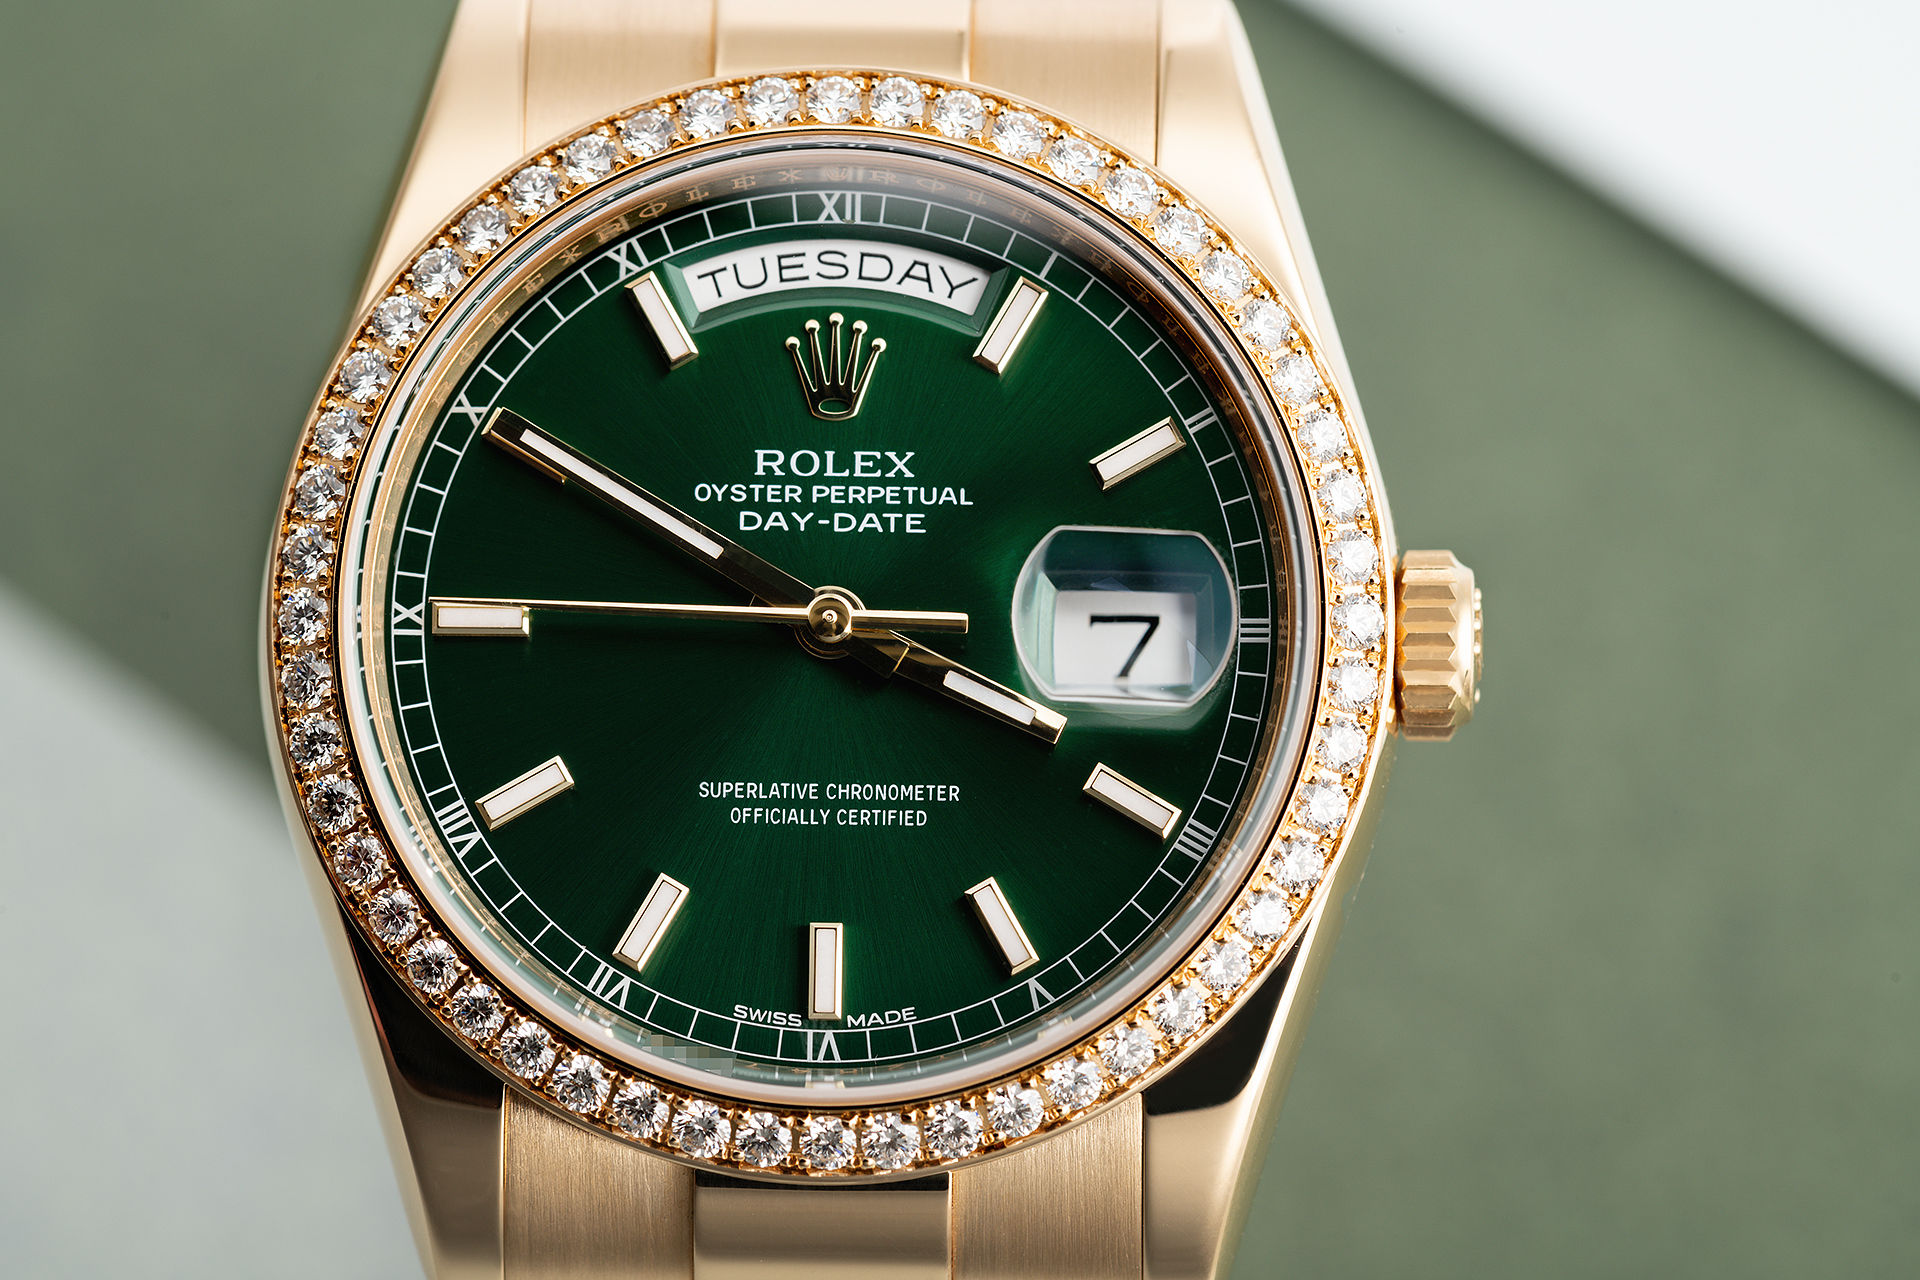 ref 118348 | Extremely Rare Example | Rolex Day-Date